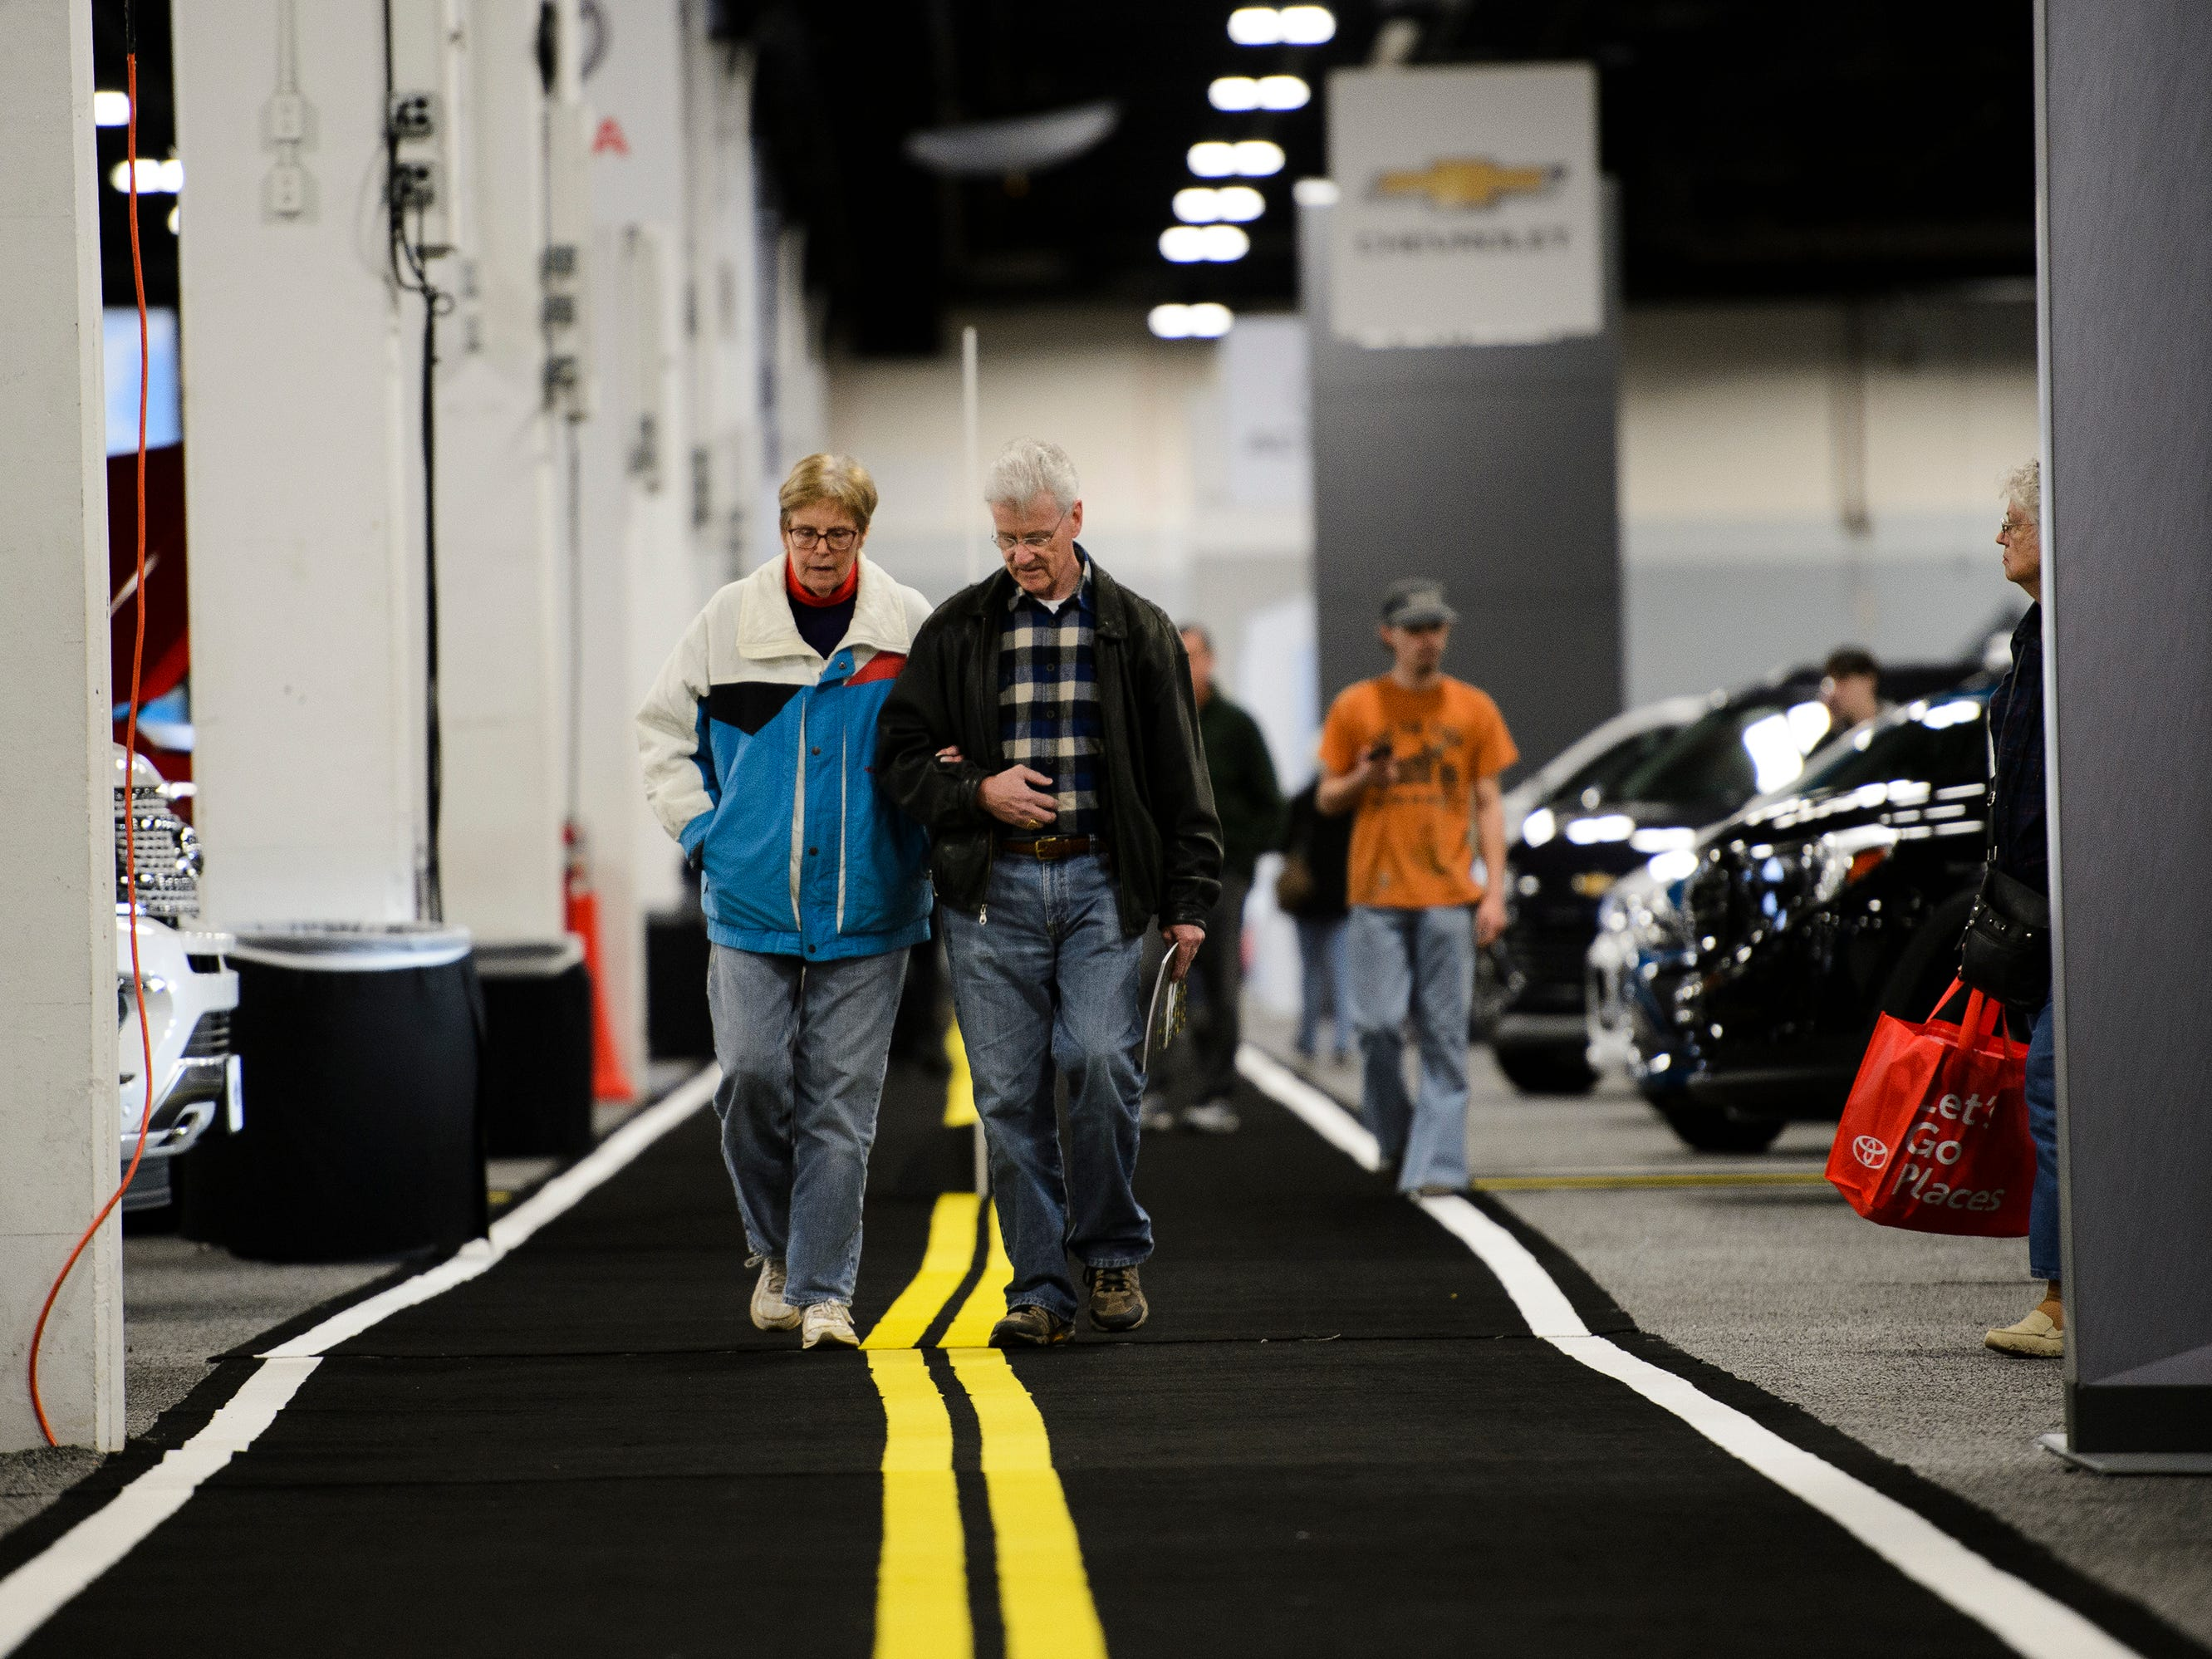 Chris and Barb Brooks walk down a road-themed walkway during the South Carolina International Auto Show Friday, Jan. 11, 2019 at the Greenville Convention Center.